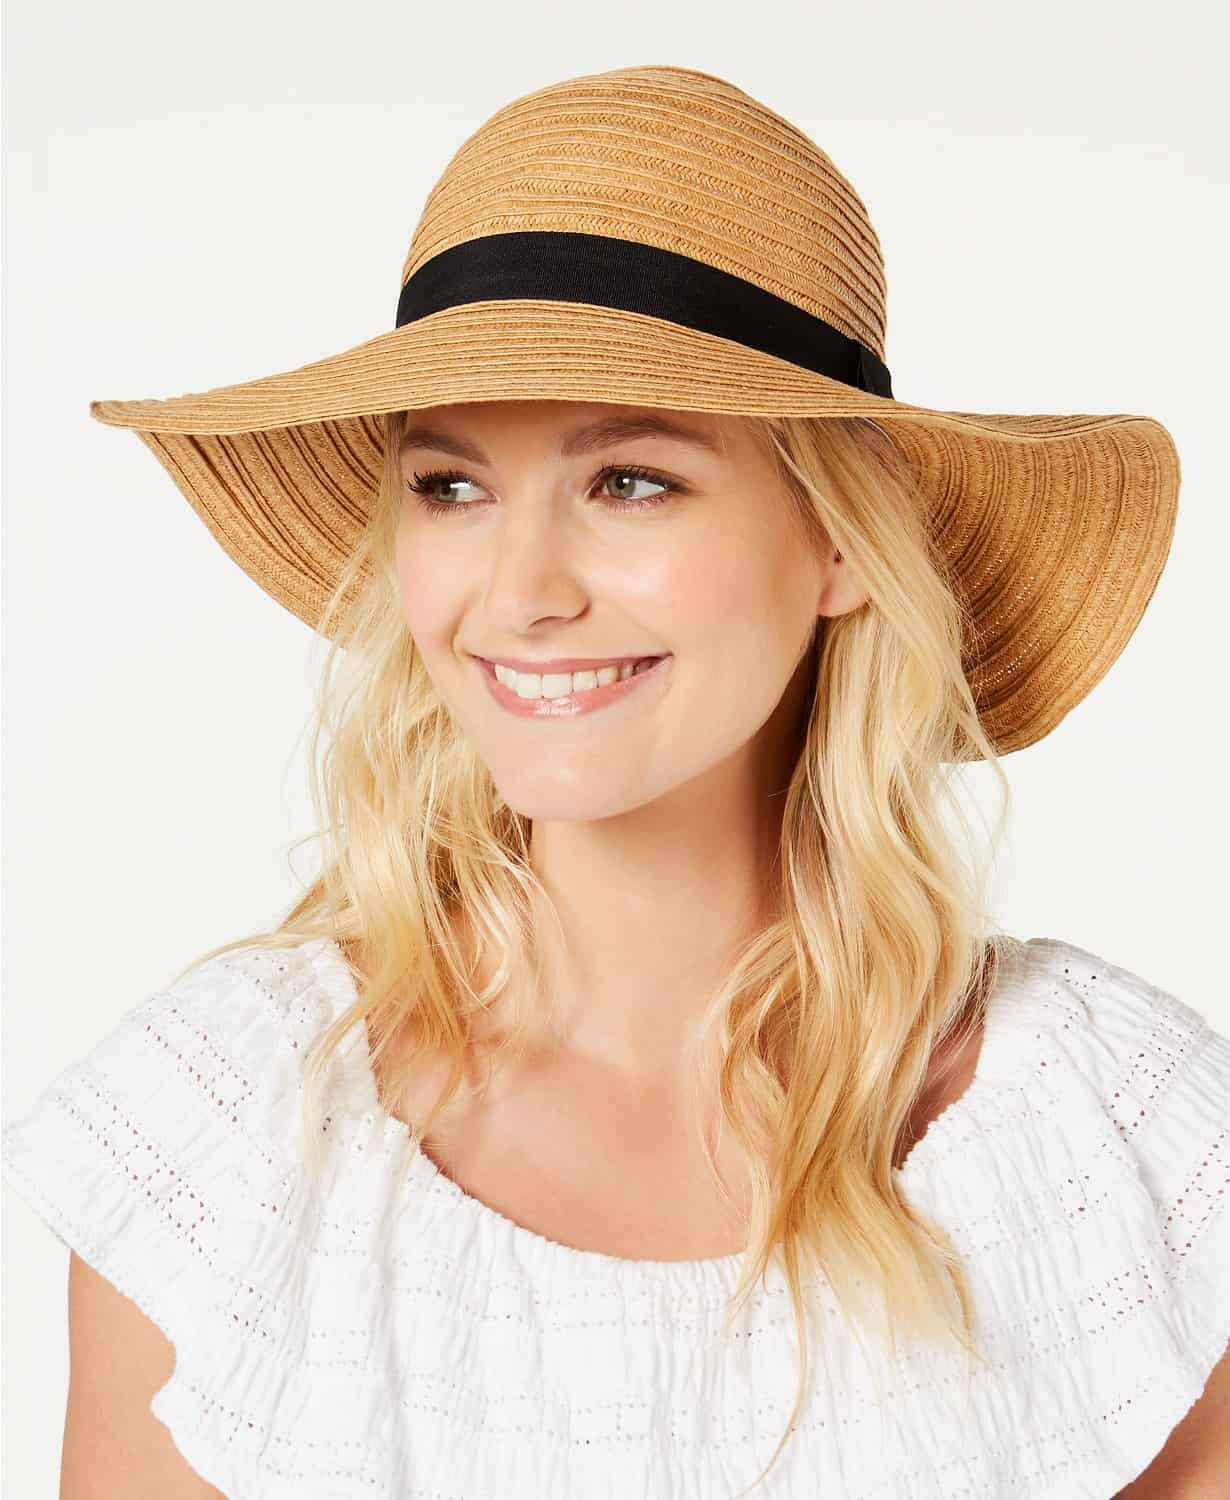 floppy hat, women's summer hat